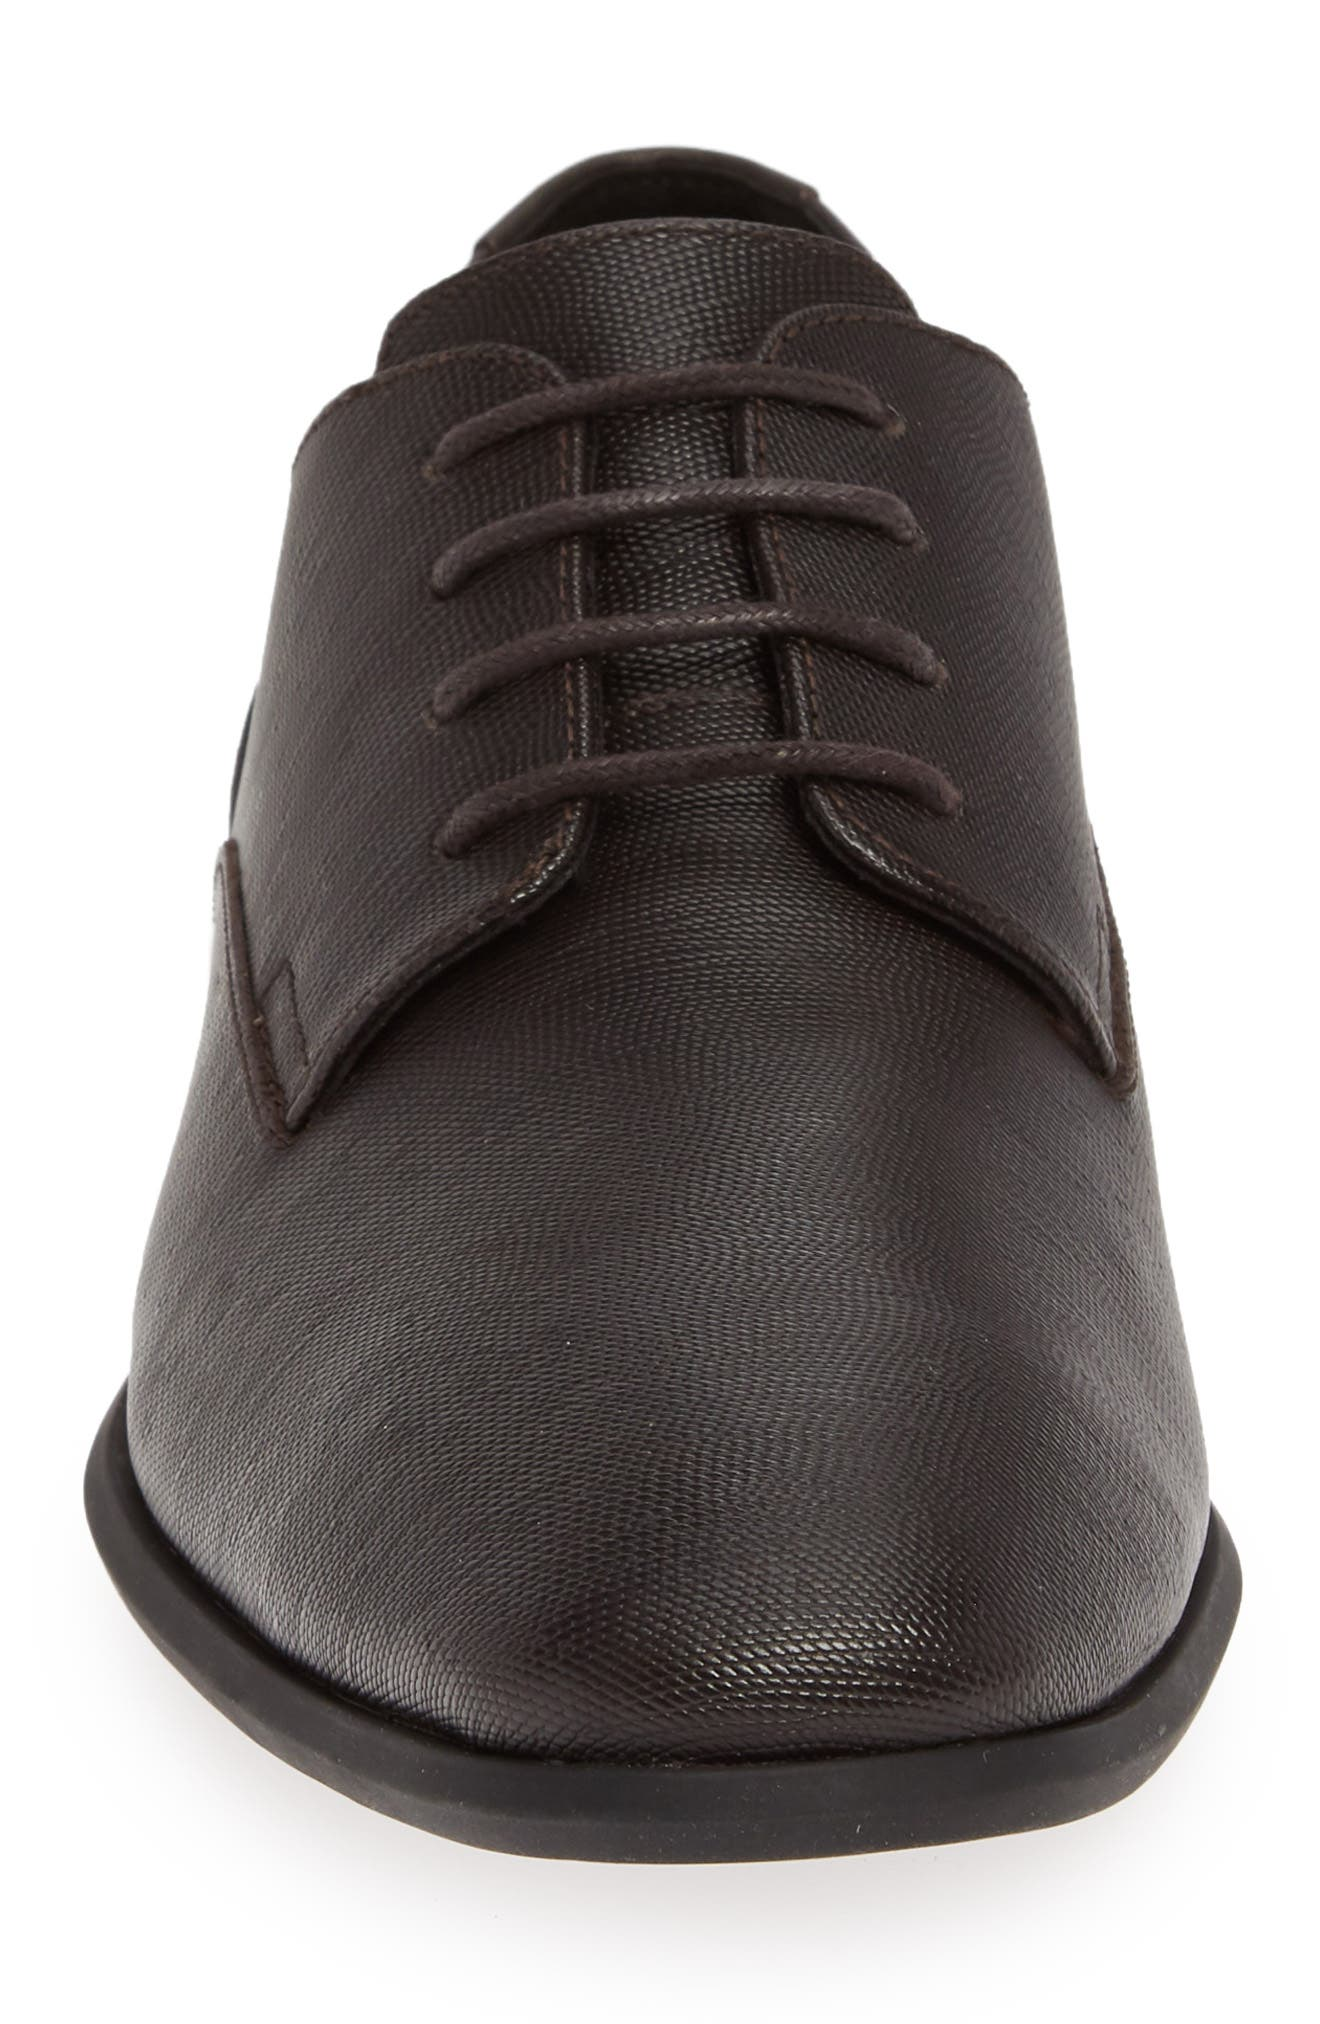 Lucca Plain Toe Derby,                             Alternate thumbnail 4, color,                             DARK BROWN